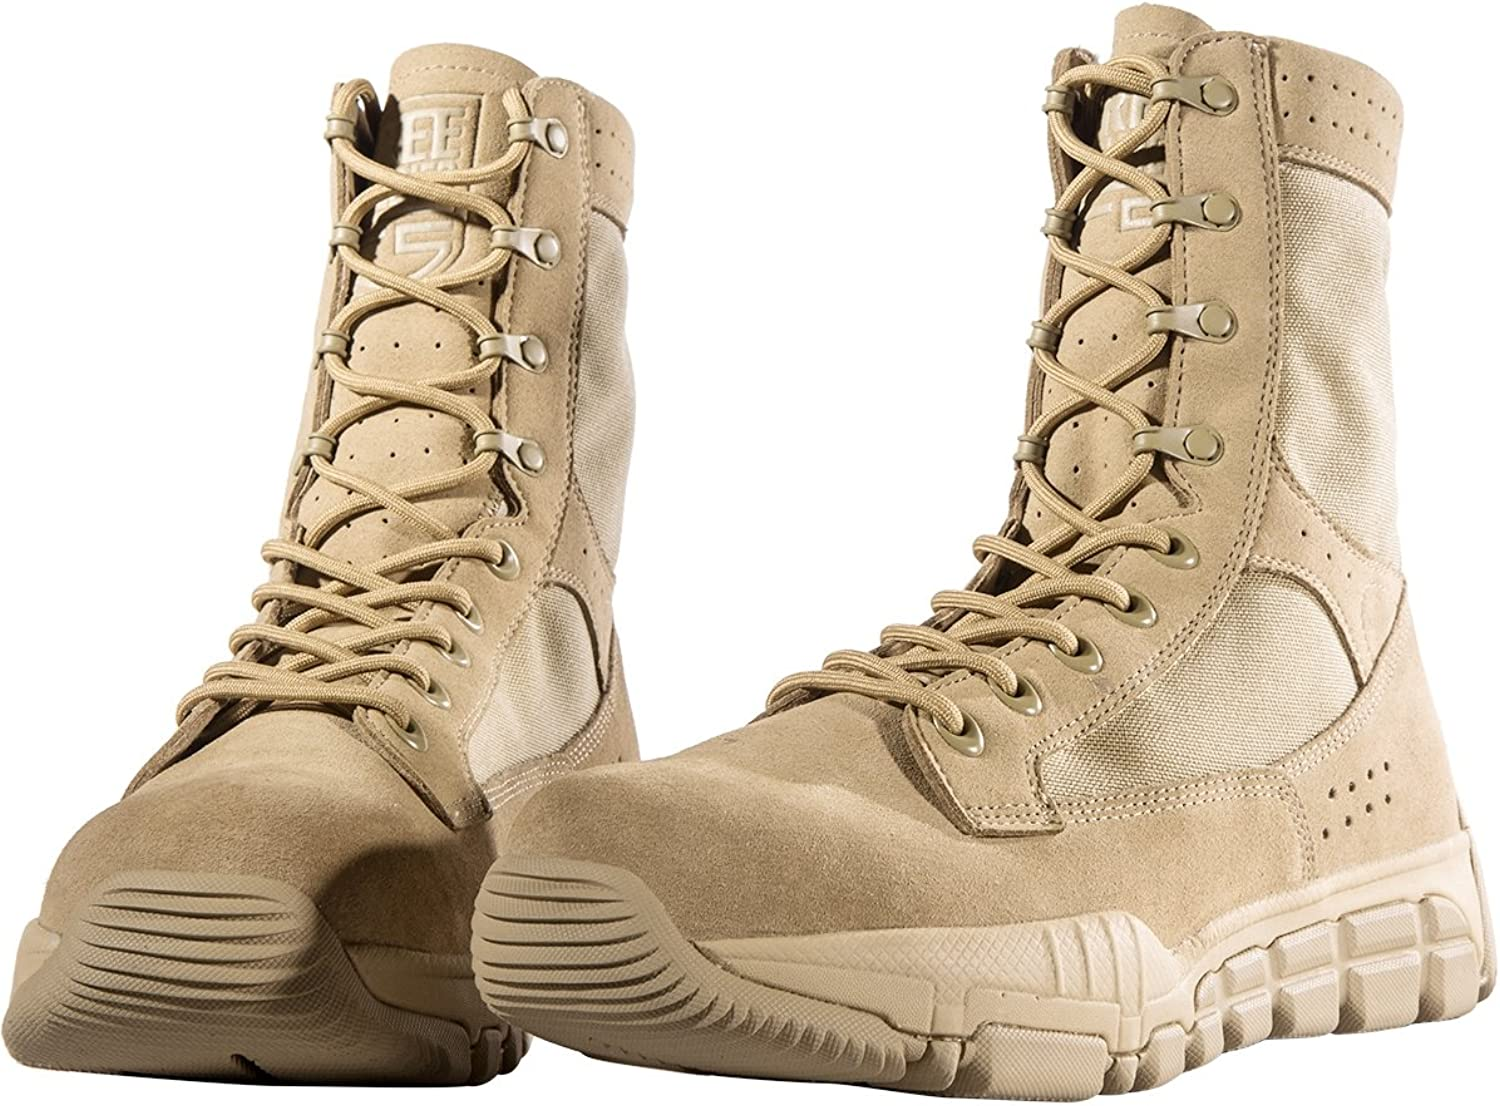 FREE SOLDIER Mens Military Boots 8 Inch Deeply Serrated Toe and Heel Bumper Desert Tan Tactical Boots